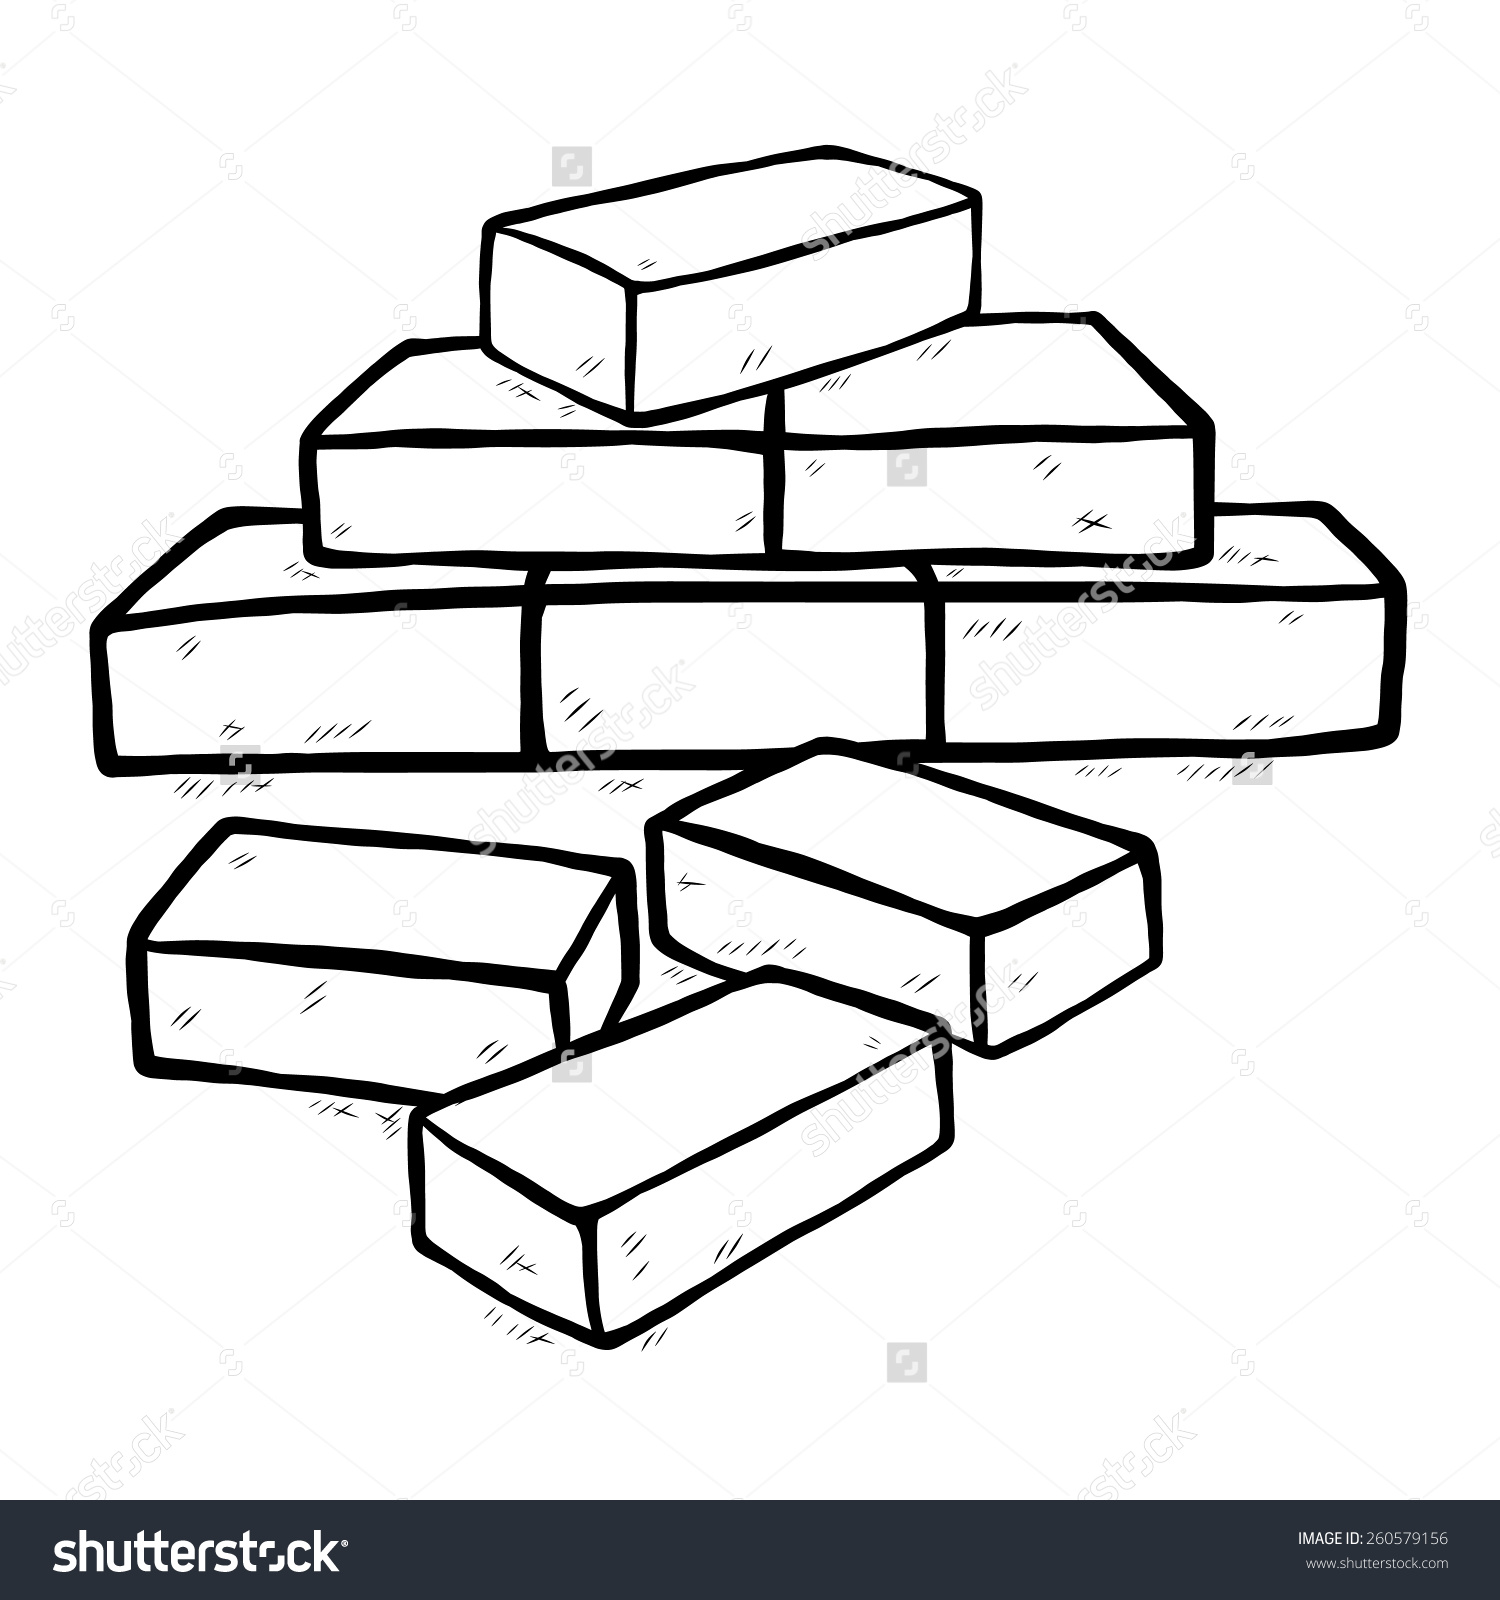 bricks clipart black and white - Clipground